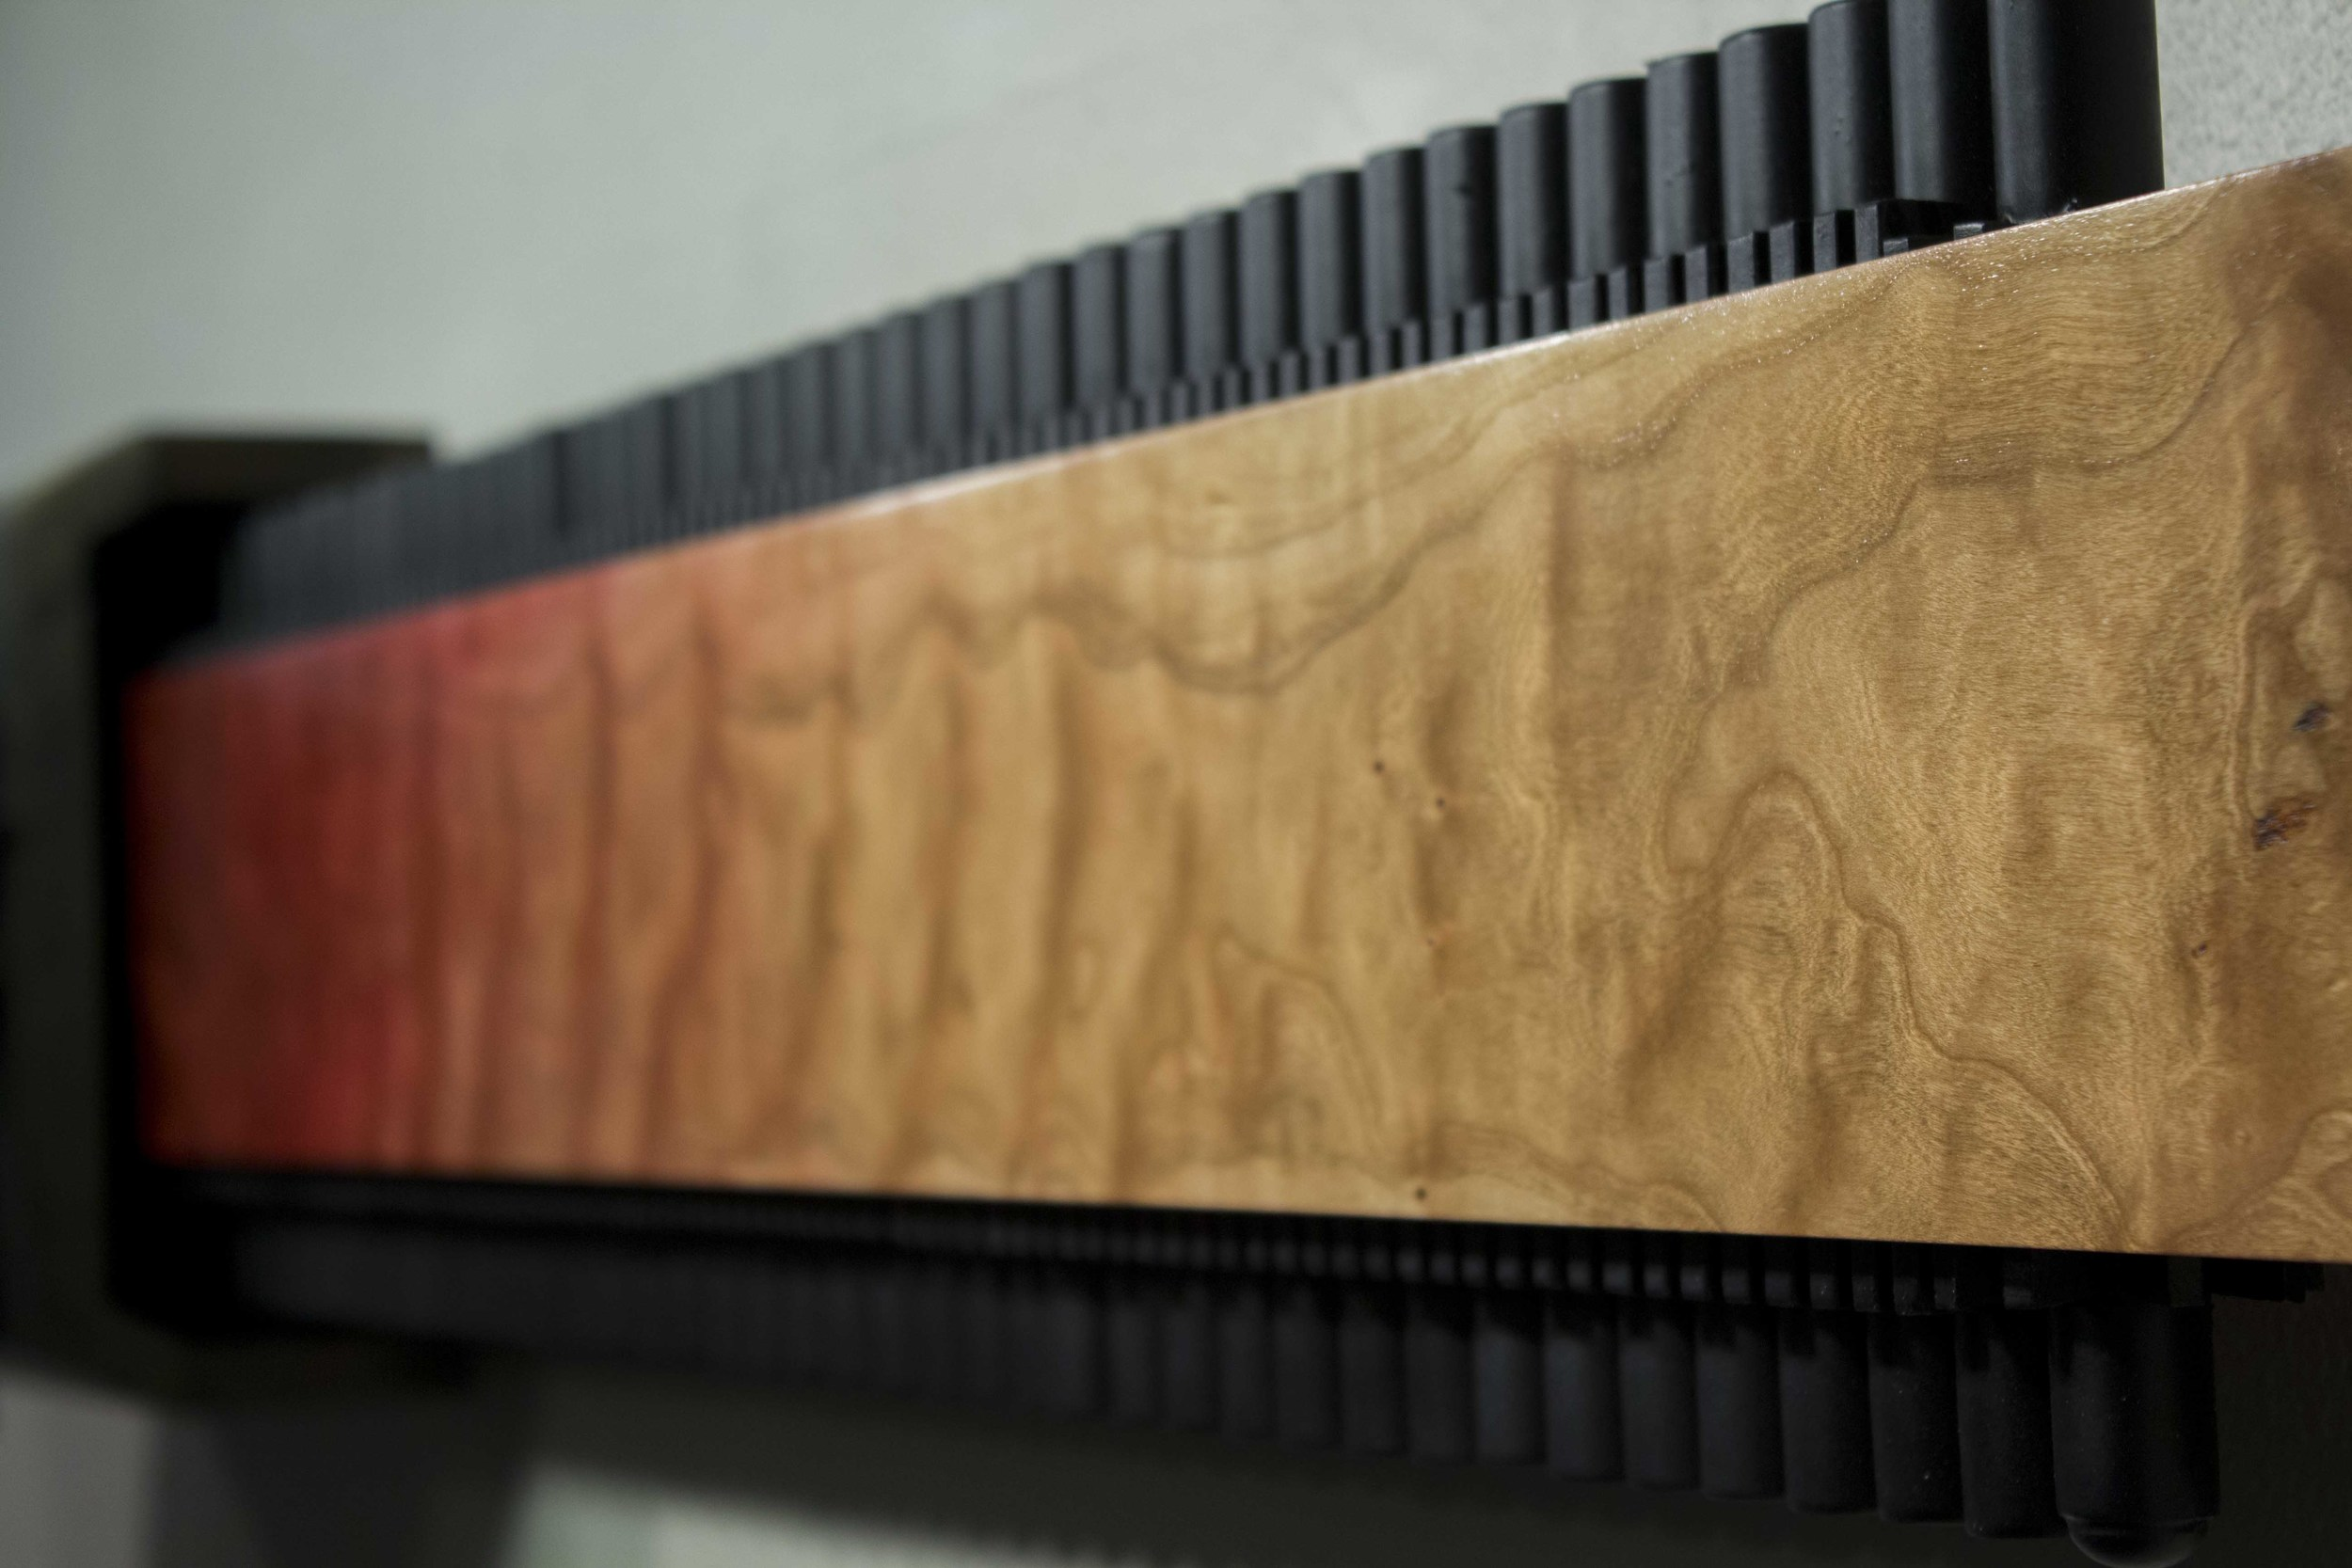 "Extraction (detail), 2016. 14"" x 48"" x 18"". Birch, cherry, figured Cherry, Oak, Poplar, Plywood. Available, contact for price."